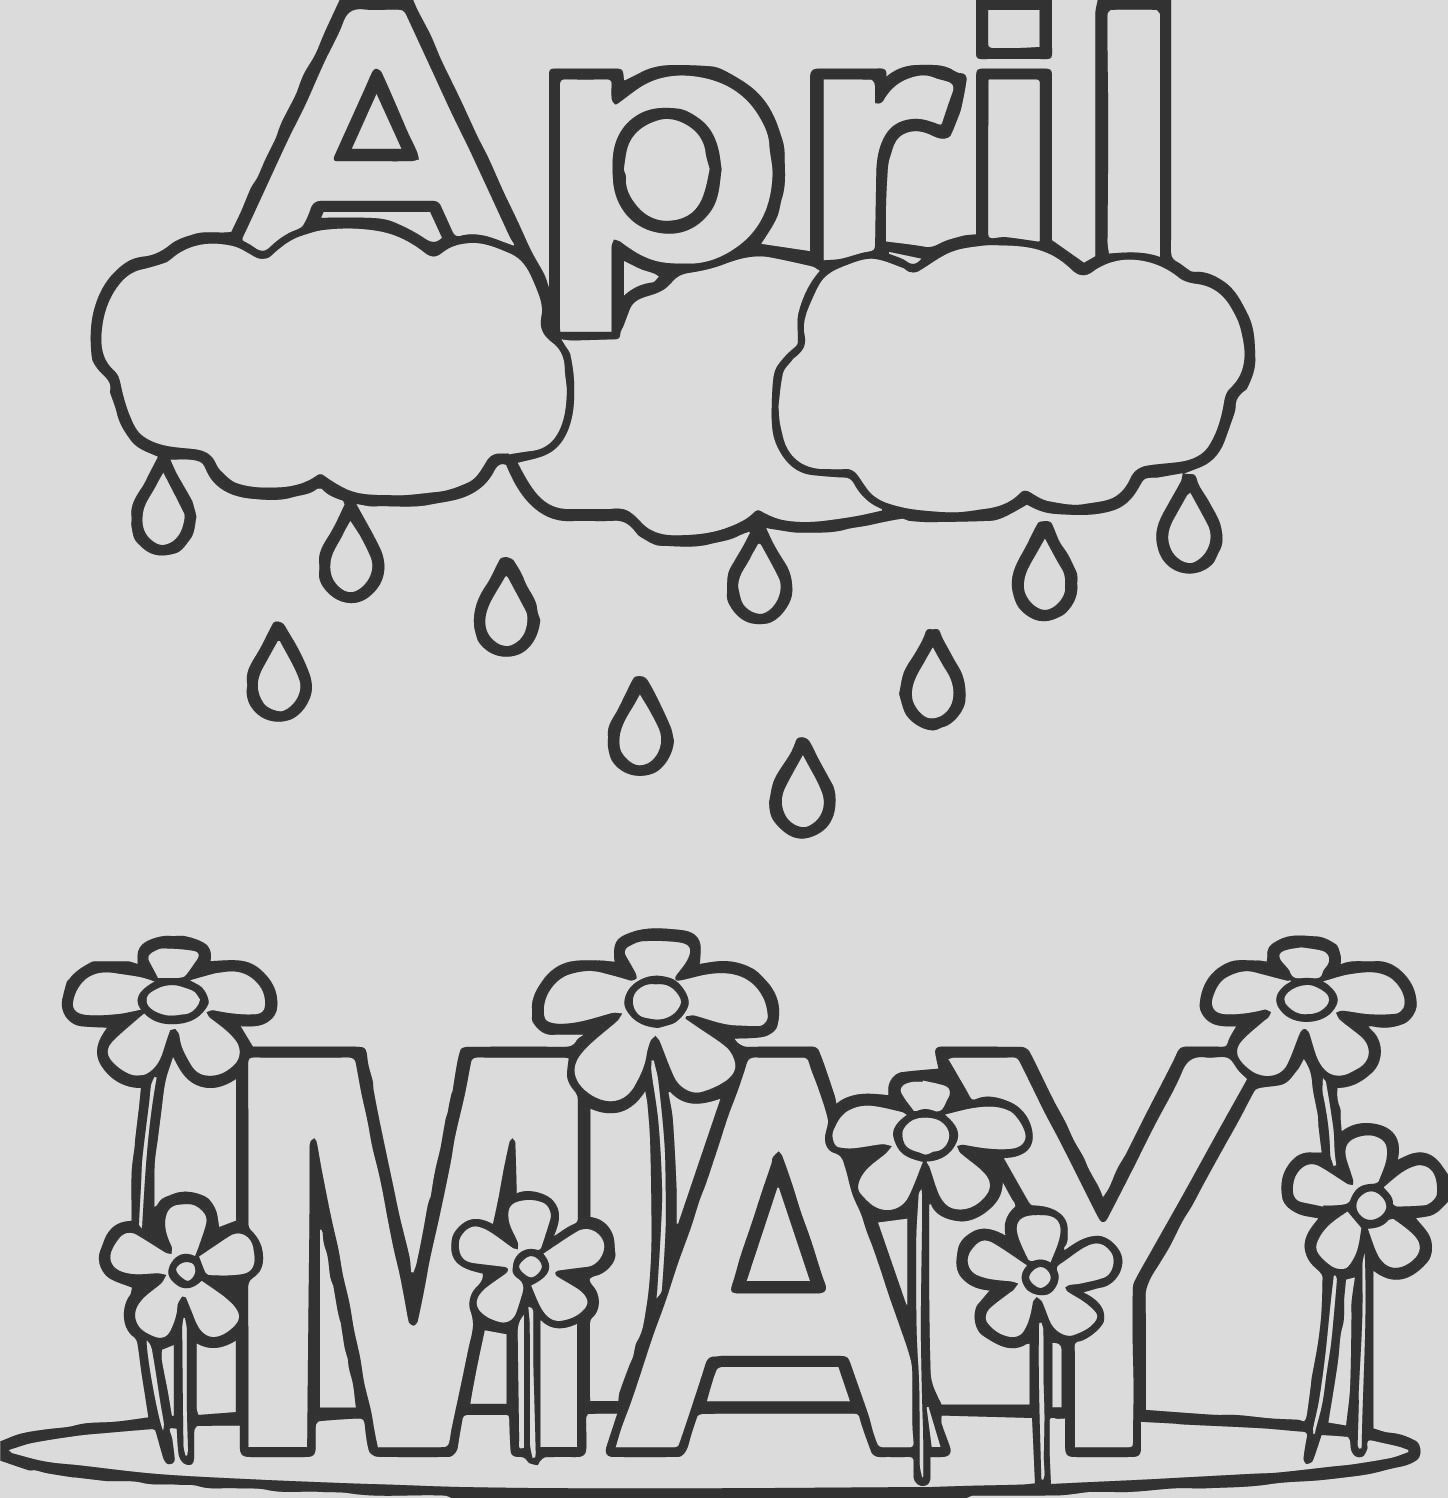 april shower may rain flower coloring page